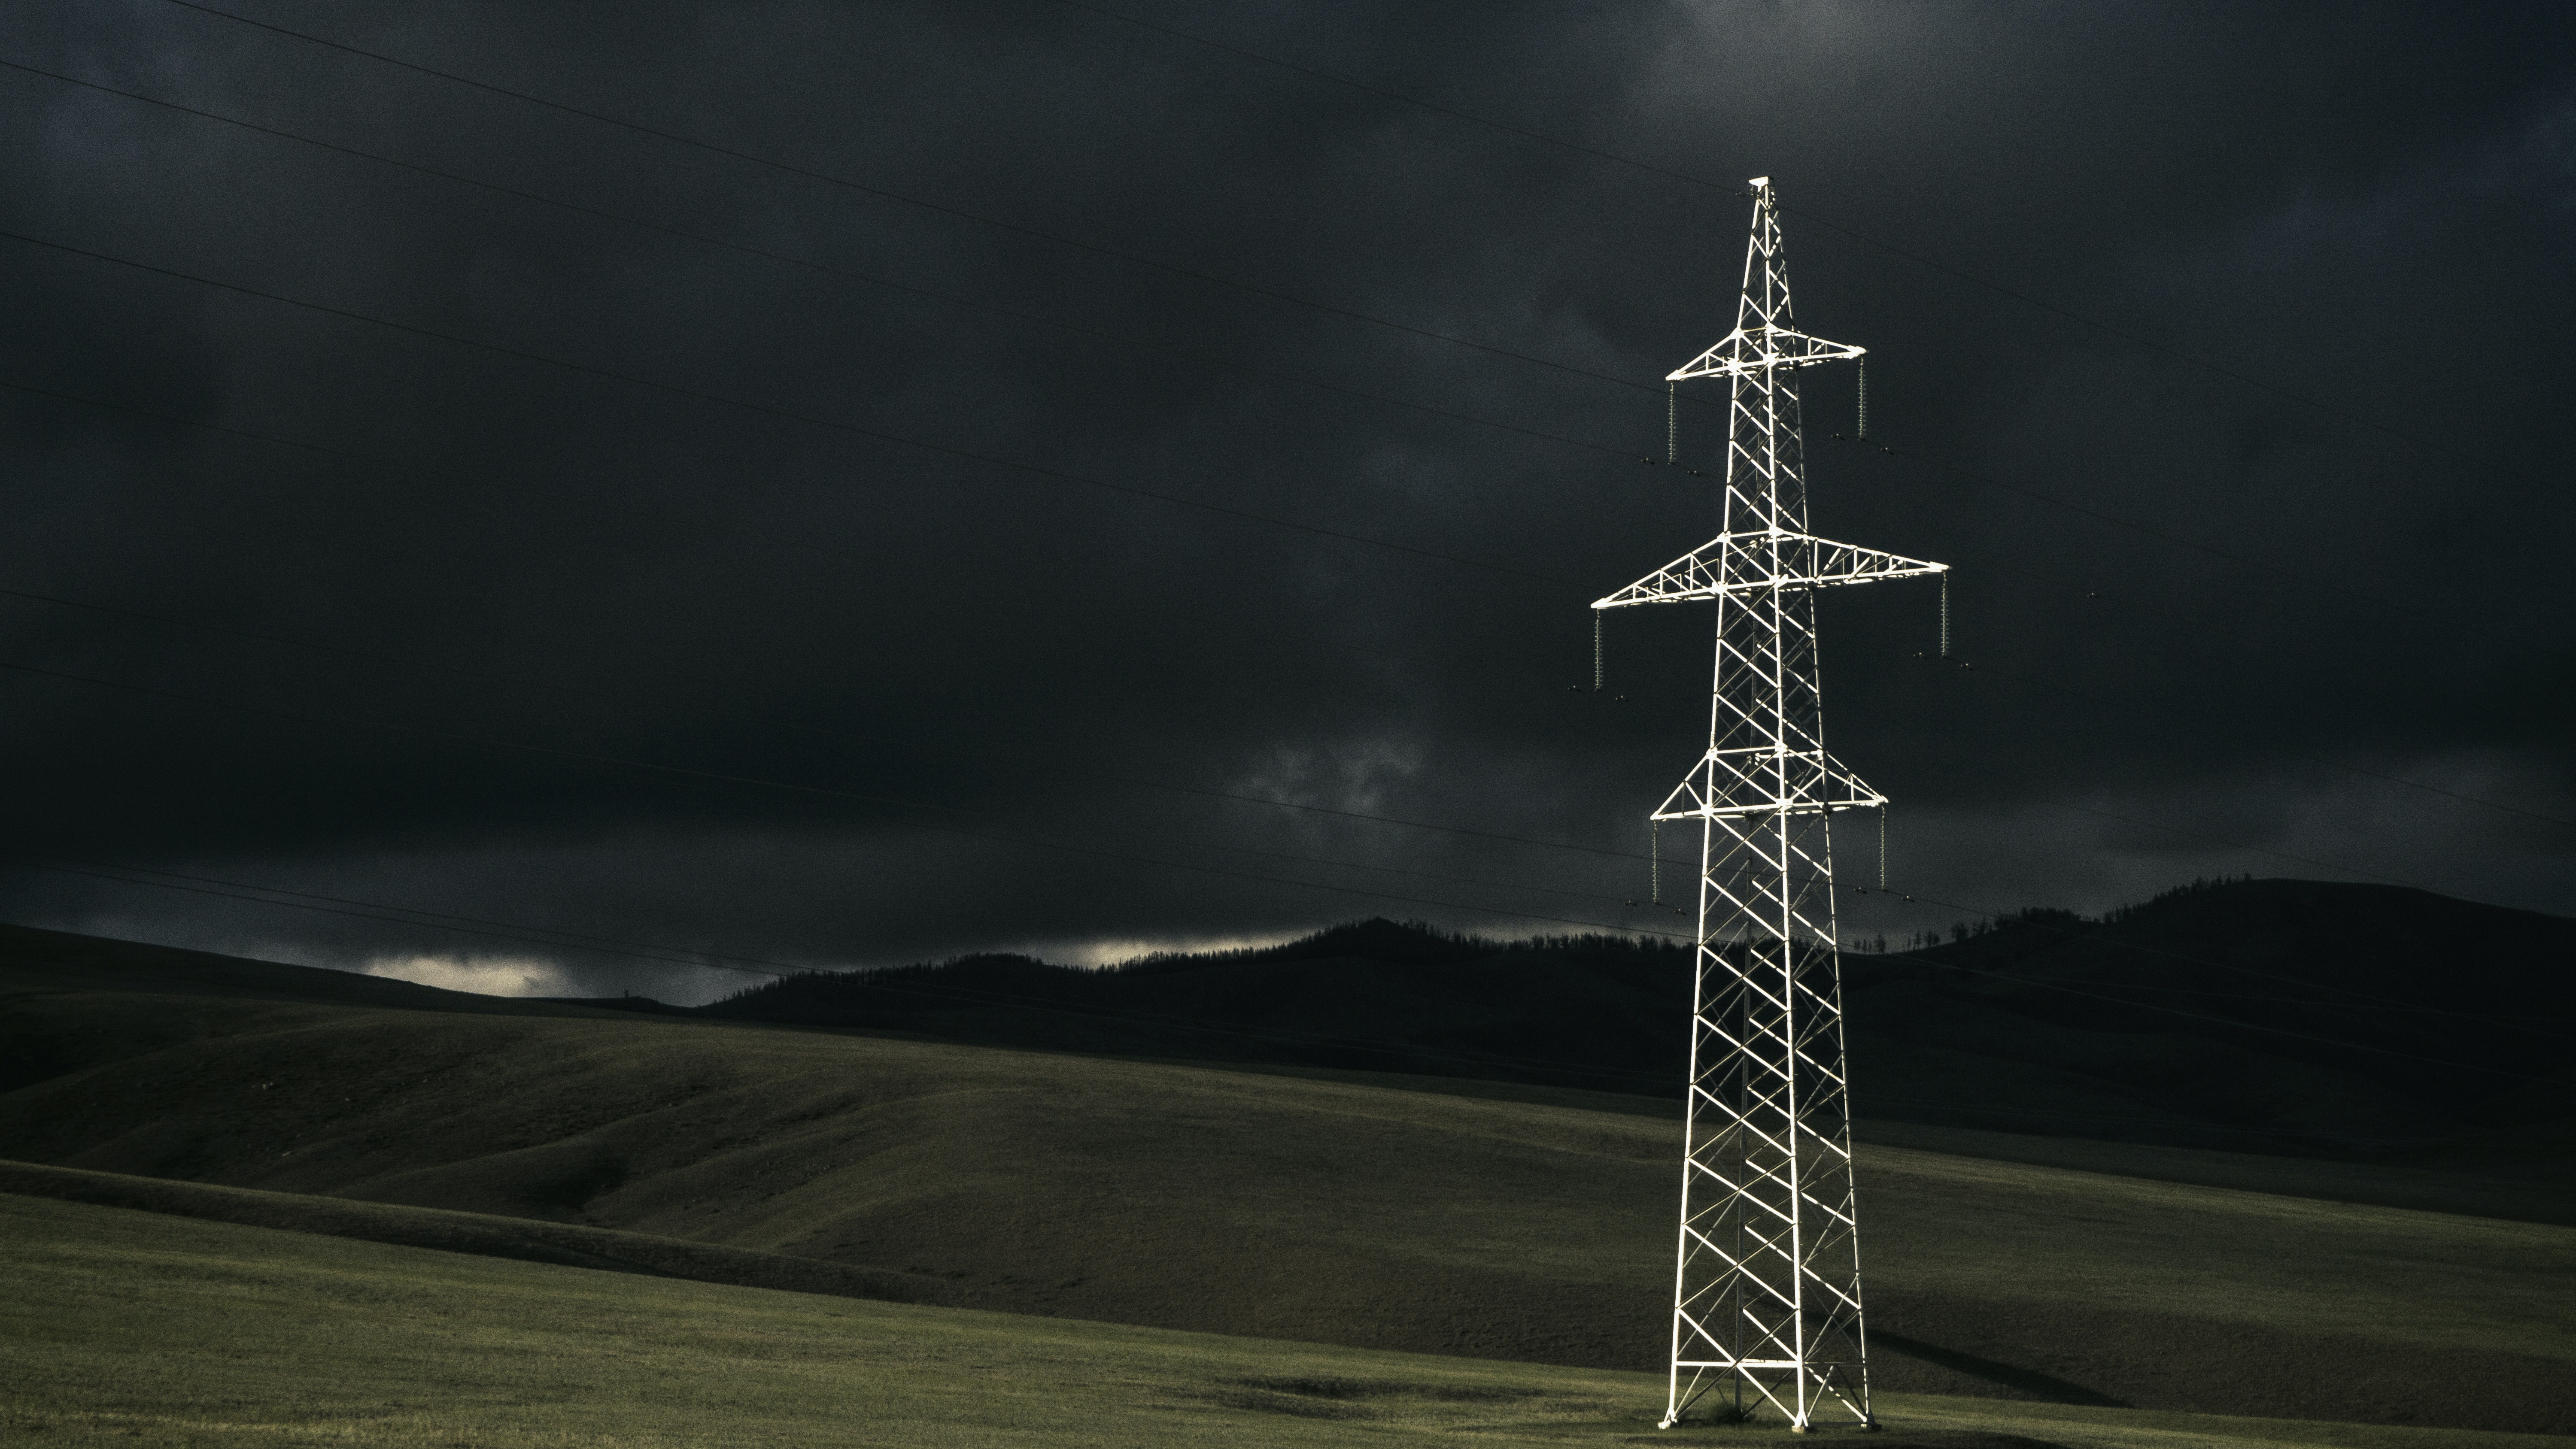 Electrical tower in a farm field on a stormy dark day